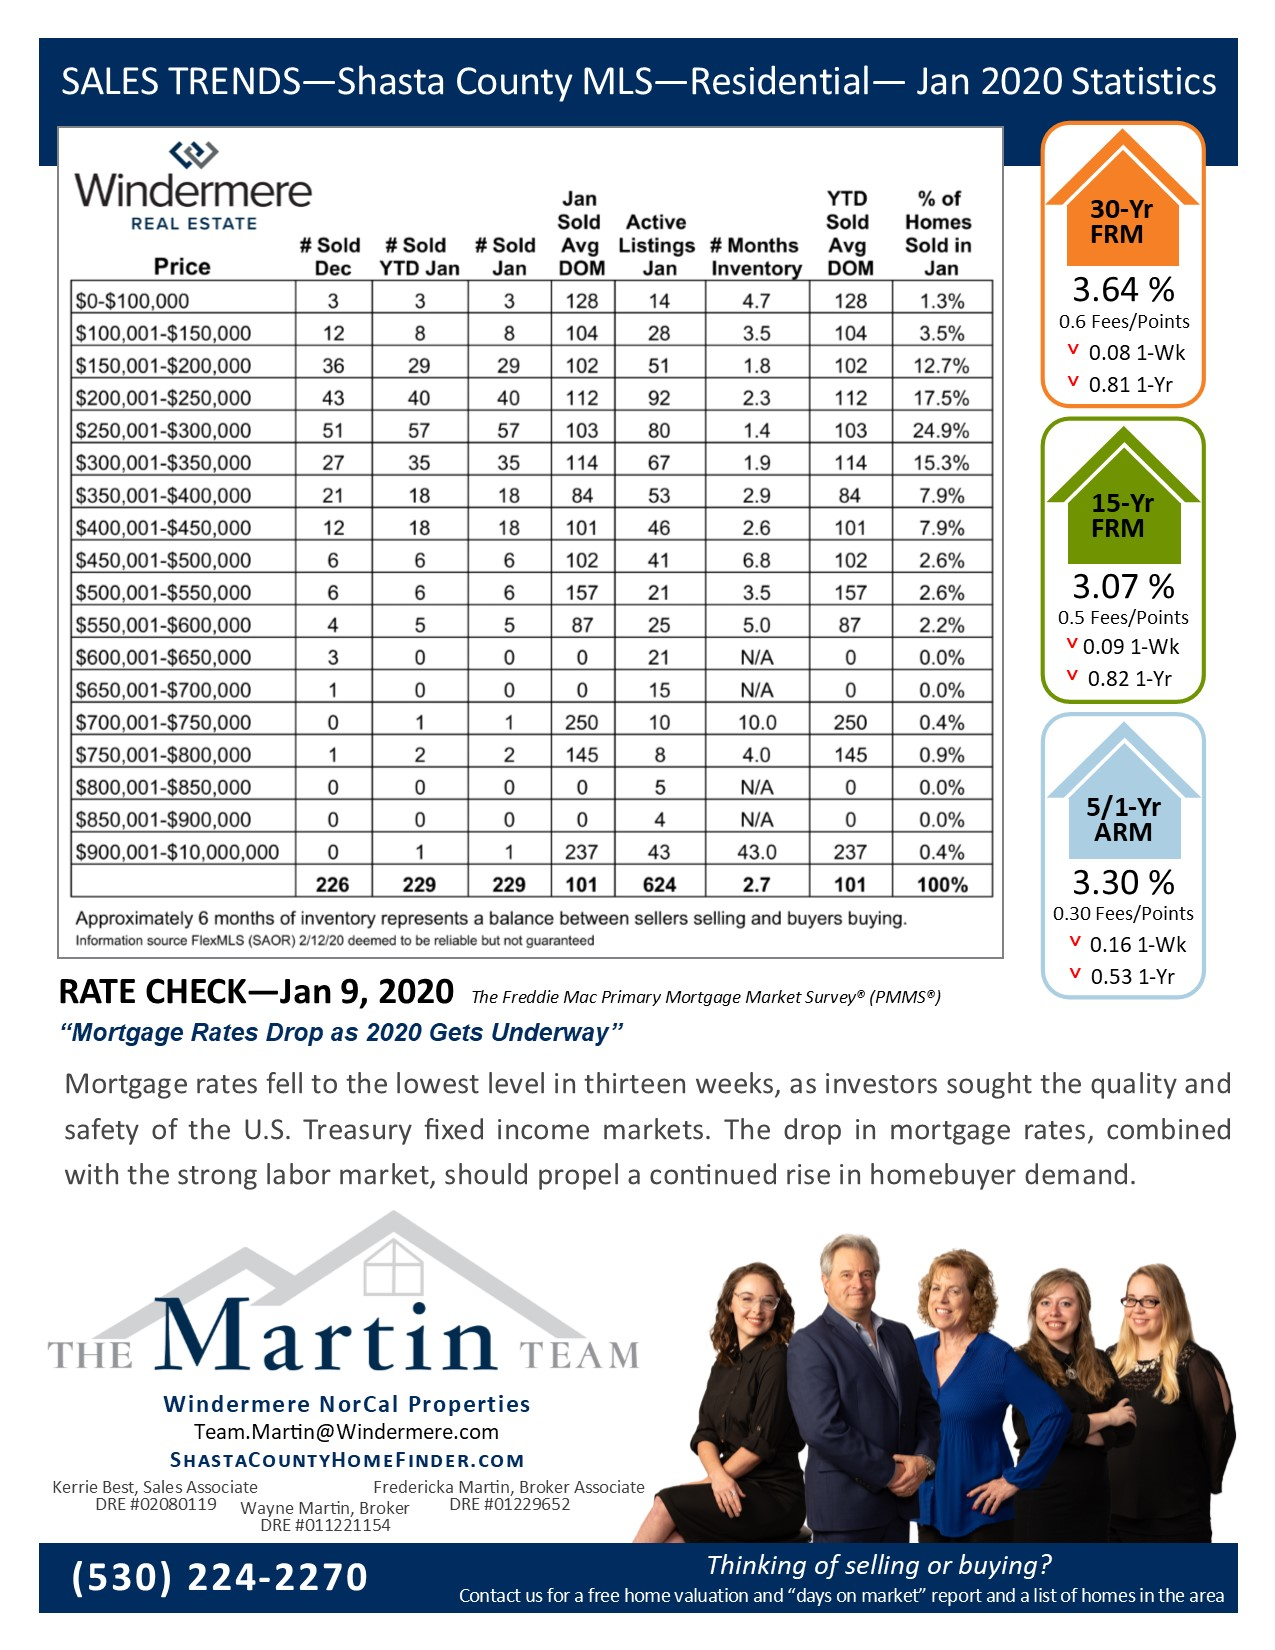 Sales Trends Reports Jan 2020. Mortgage rates and statistics on residential sales for Jan 2020.